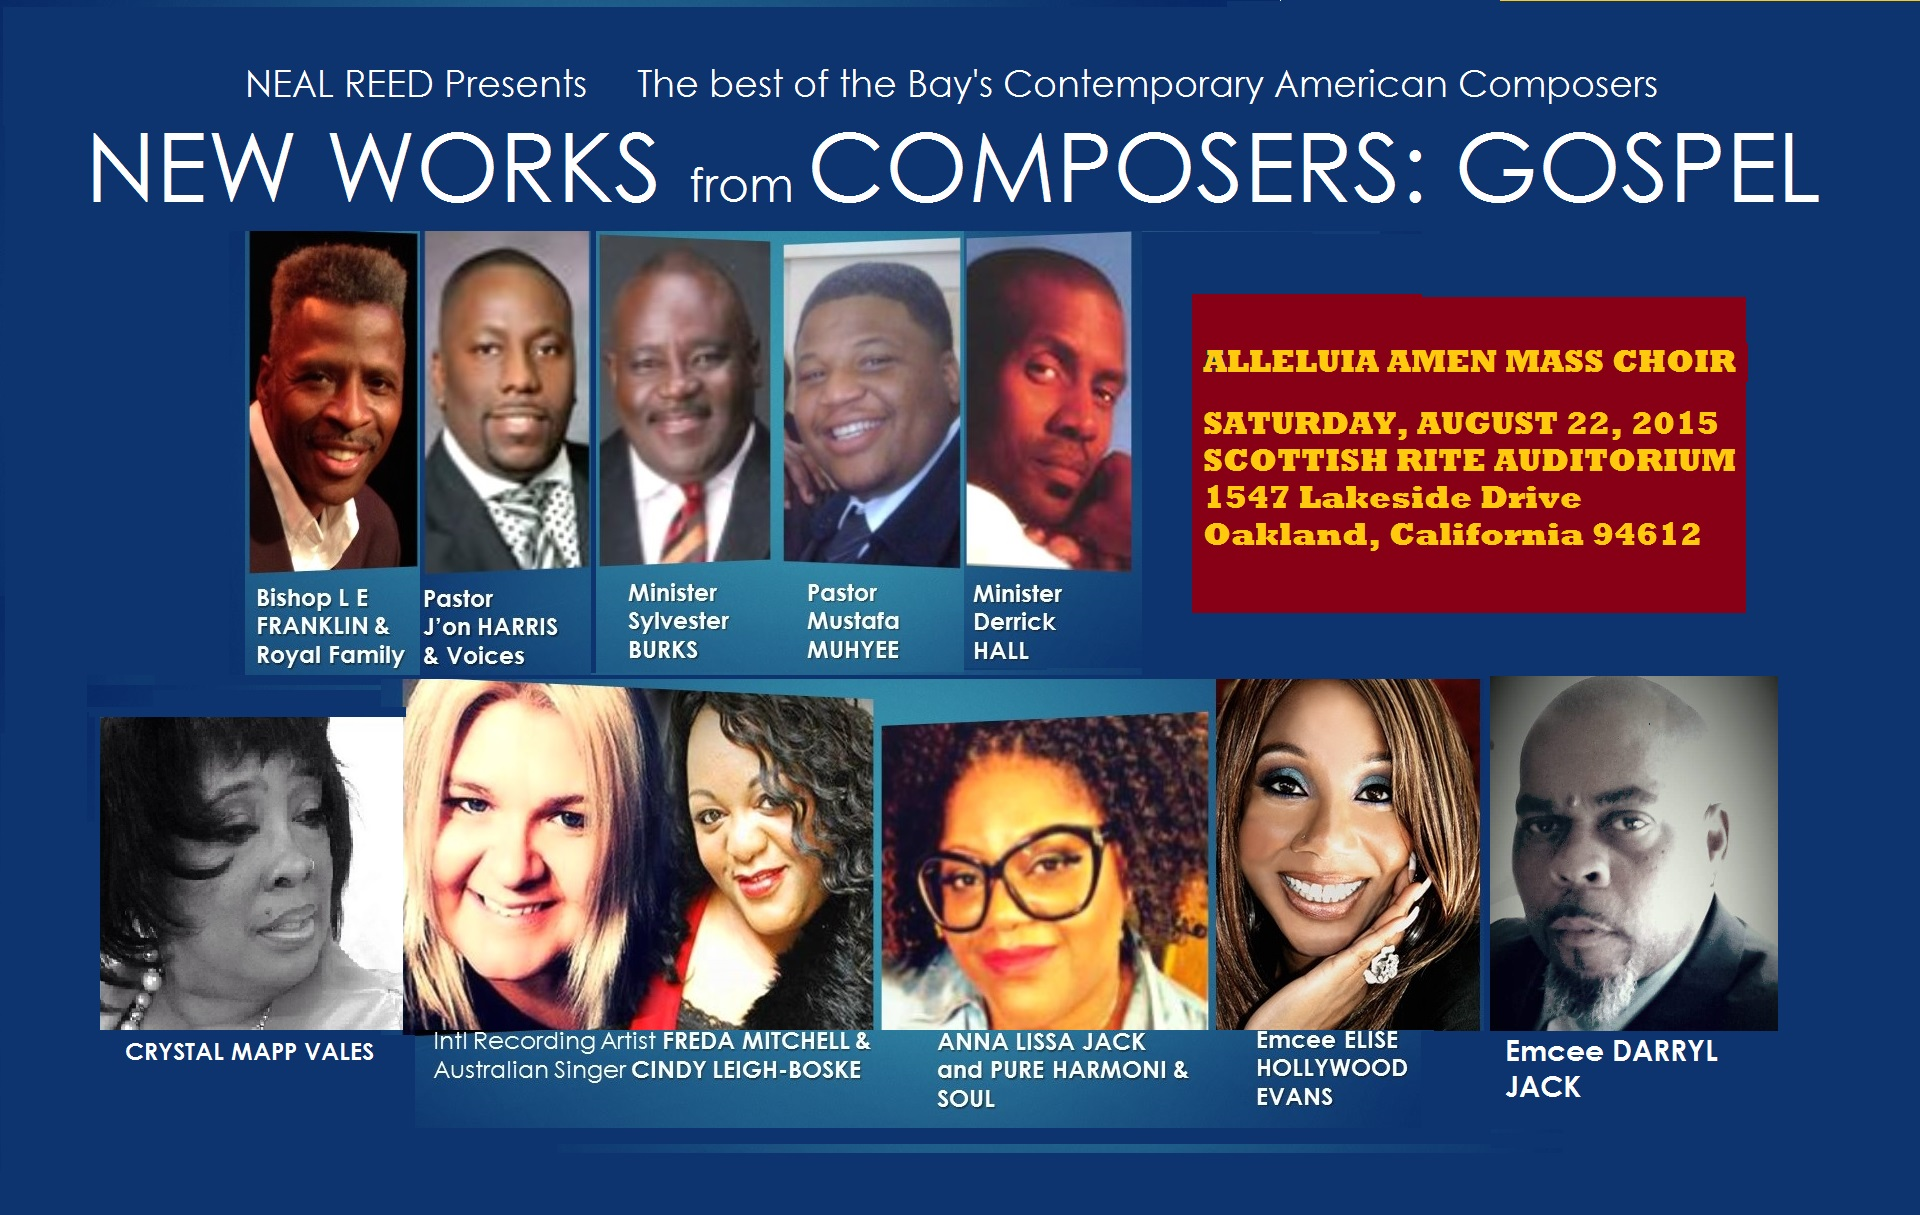 Neal Reed Presents NEW WORKS by GOSPEL Composers